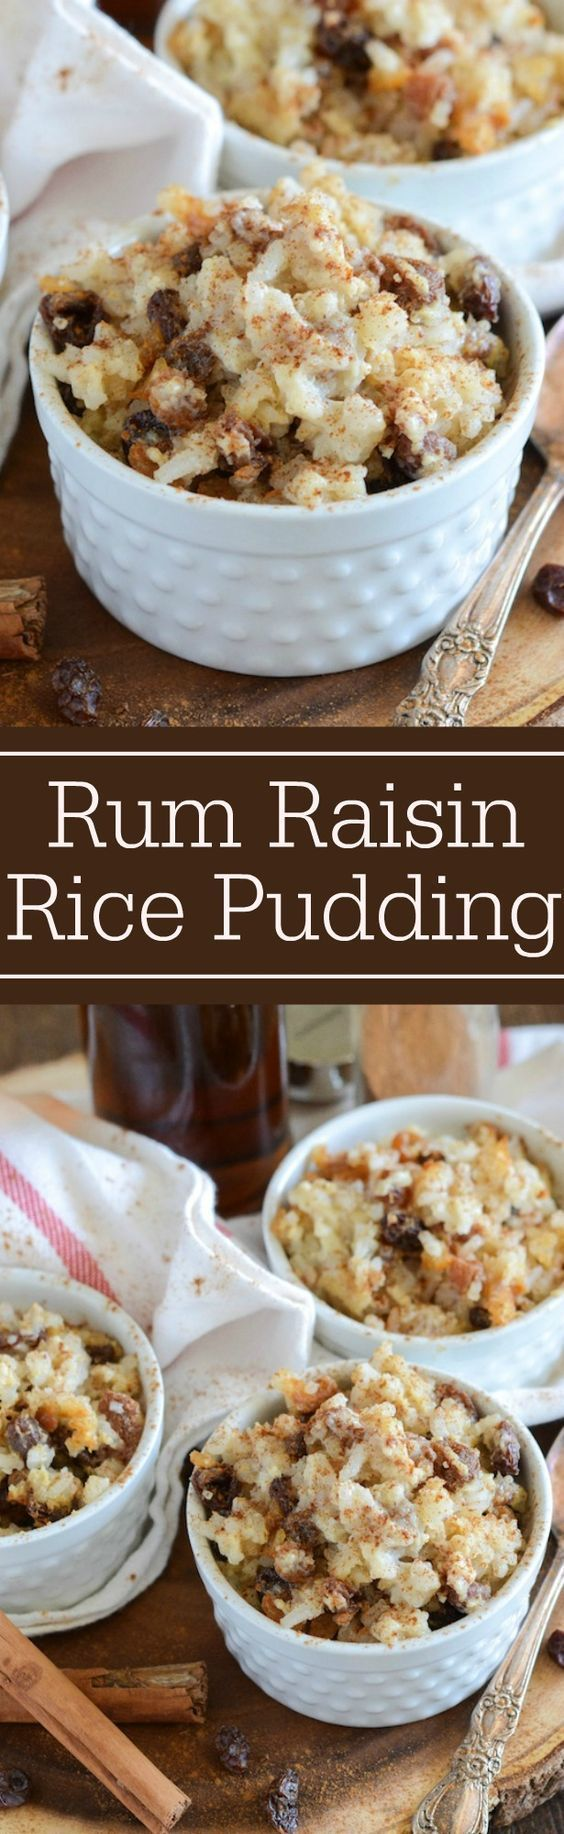 Rum Raisin Baked Rice Pudding! Use up that leftover rice ...